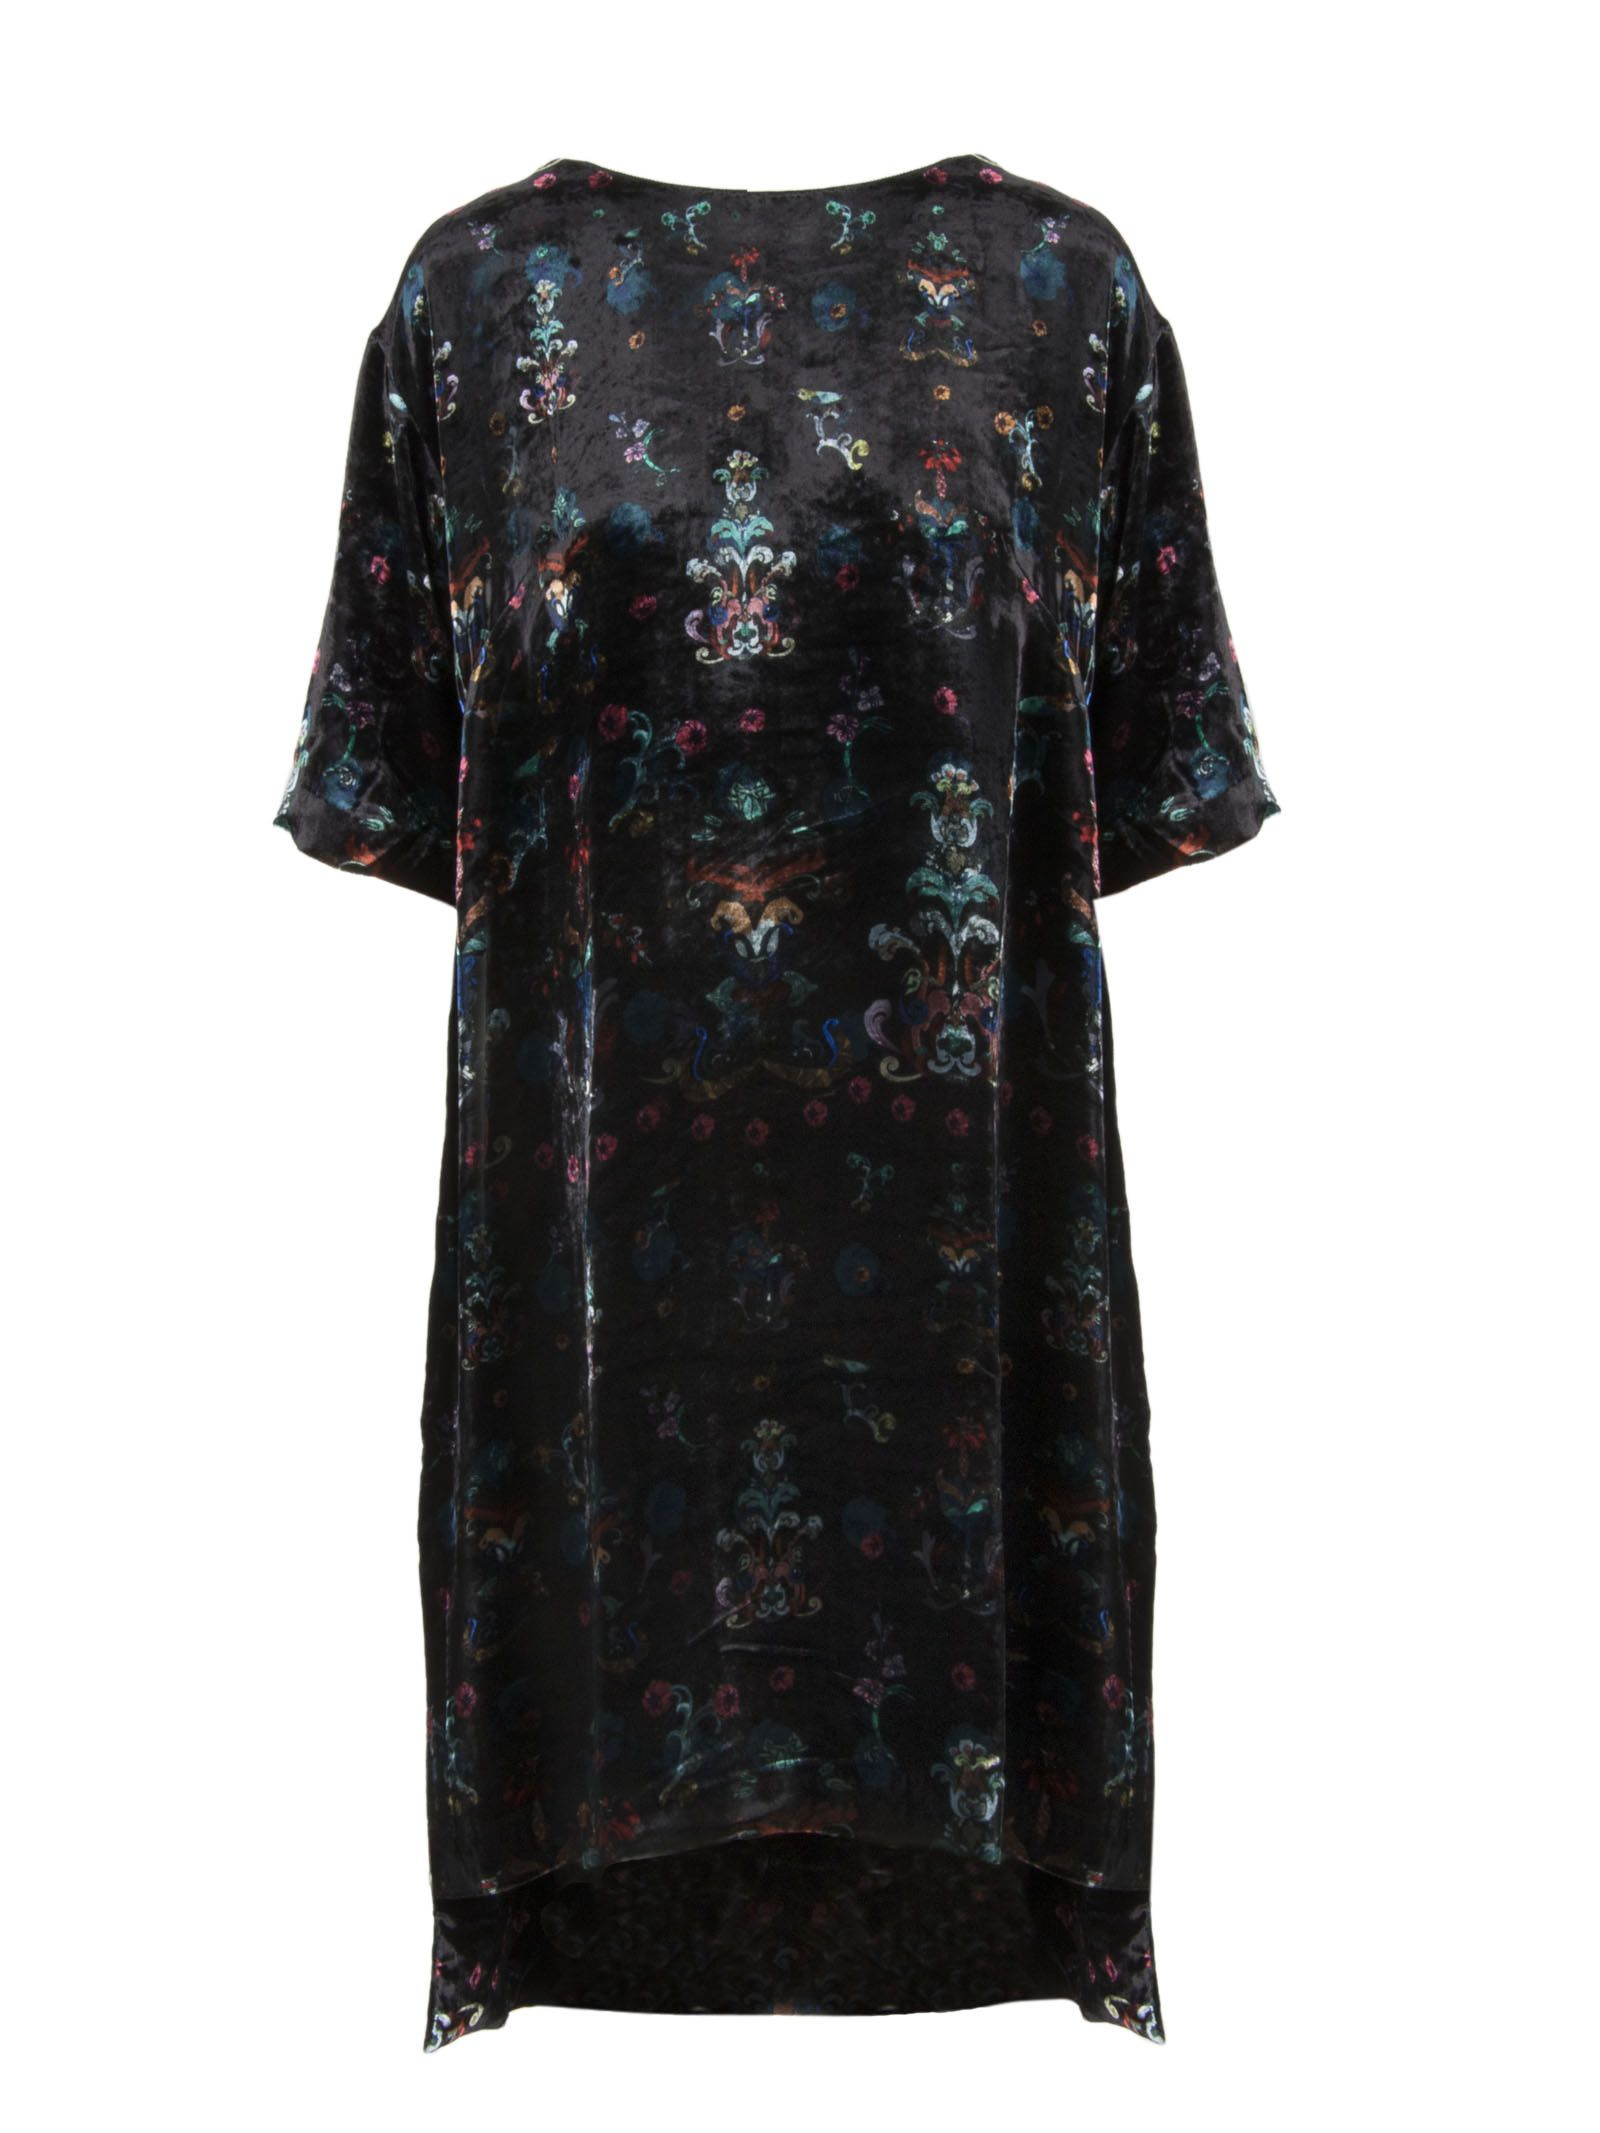 AILANTO Floral Print Dress in Black